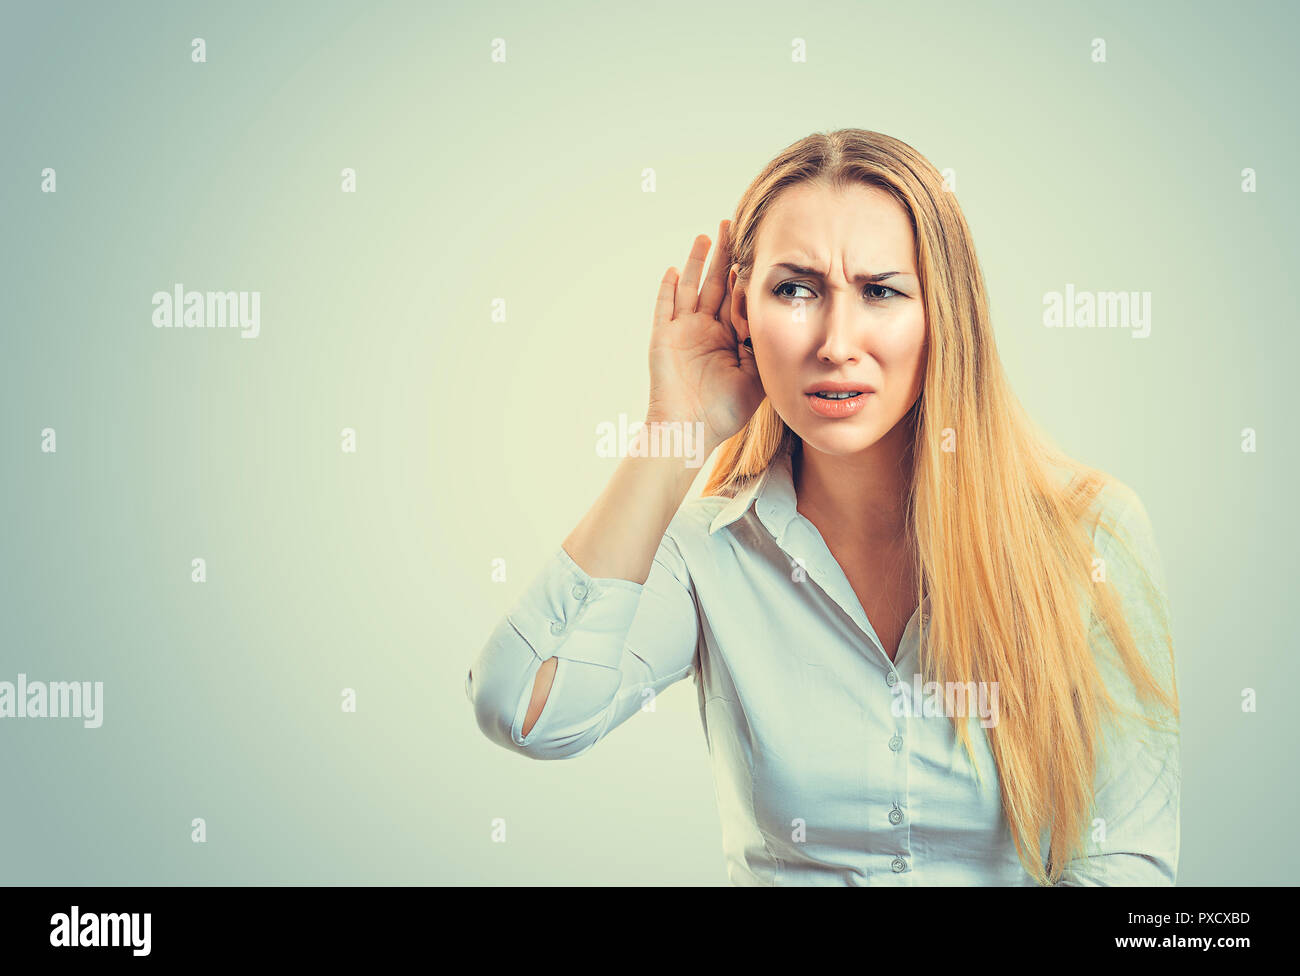 Blond woman in white shirt frowning while trying to listen to gossips on gray background - Stock Image